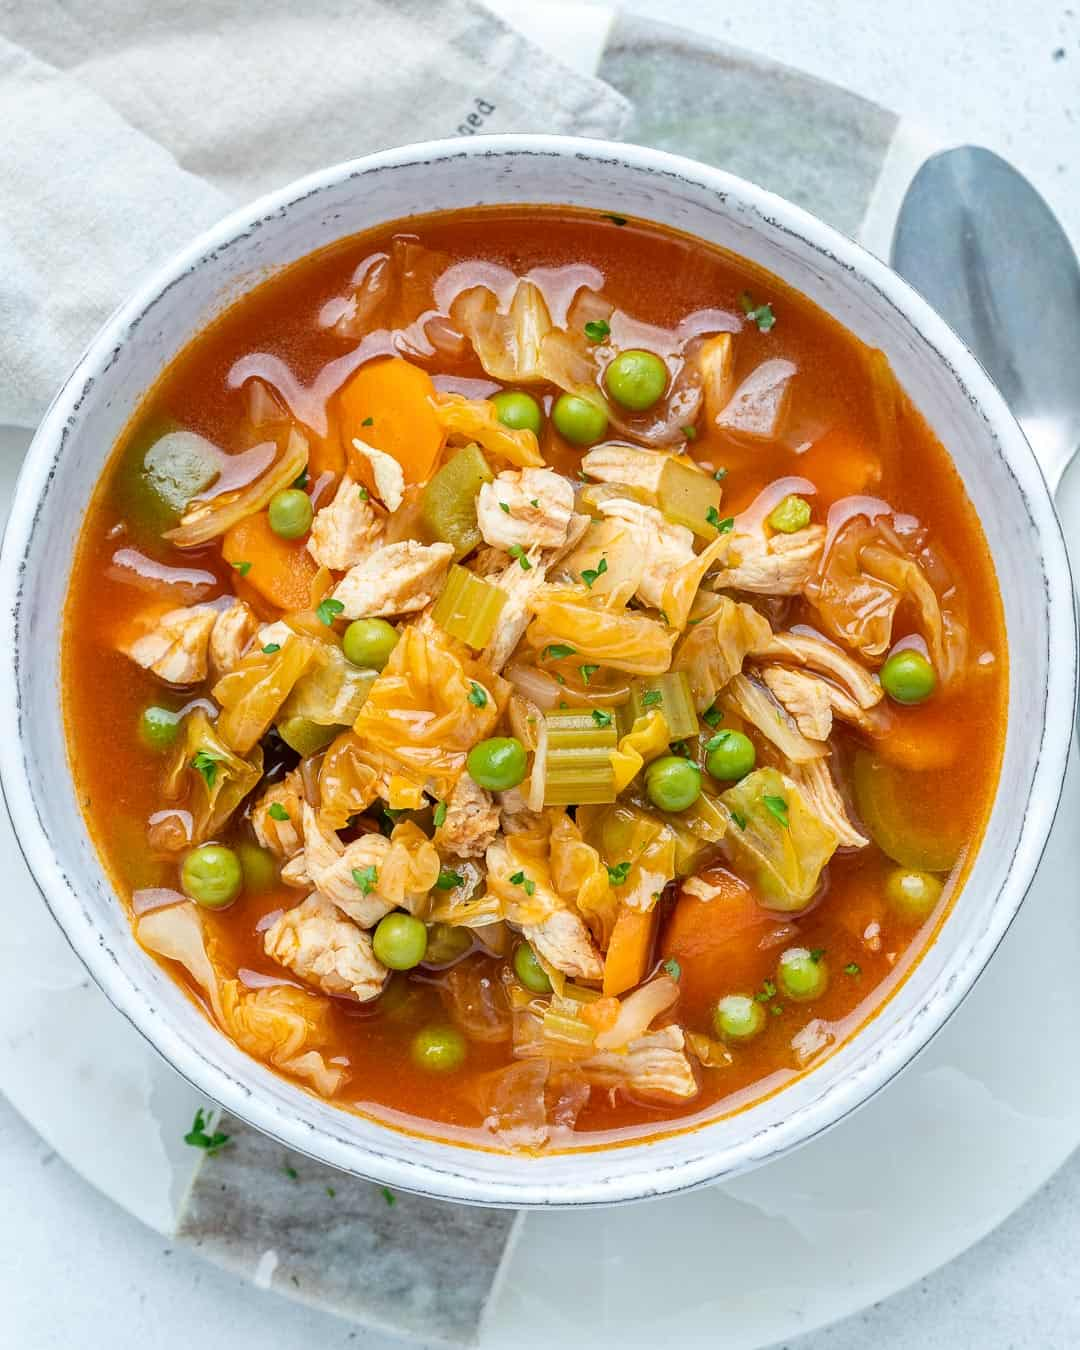 cabbage soup made with veggies and chicken